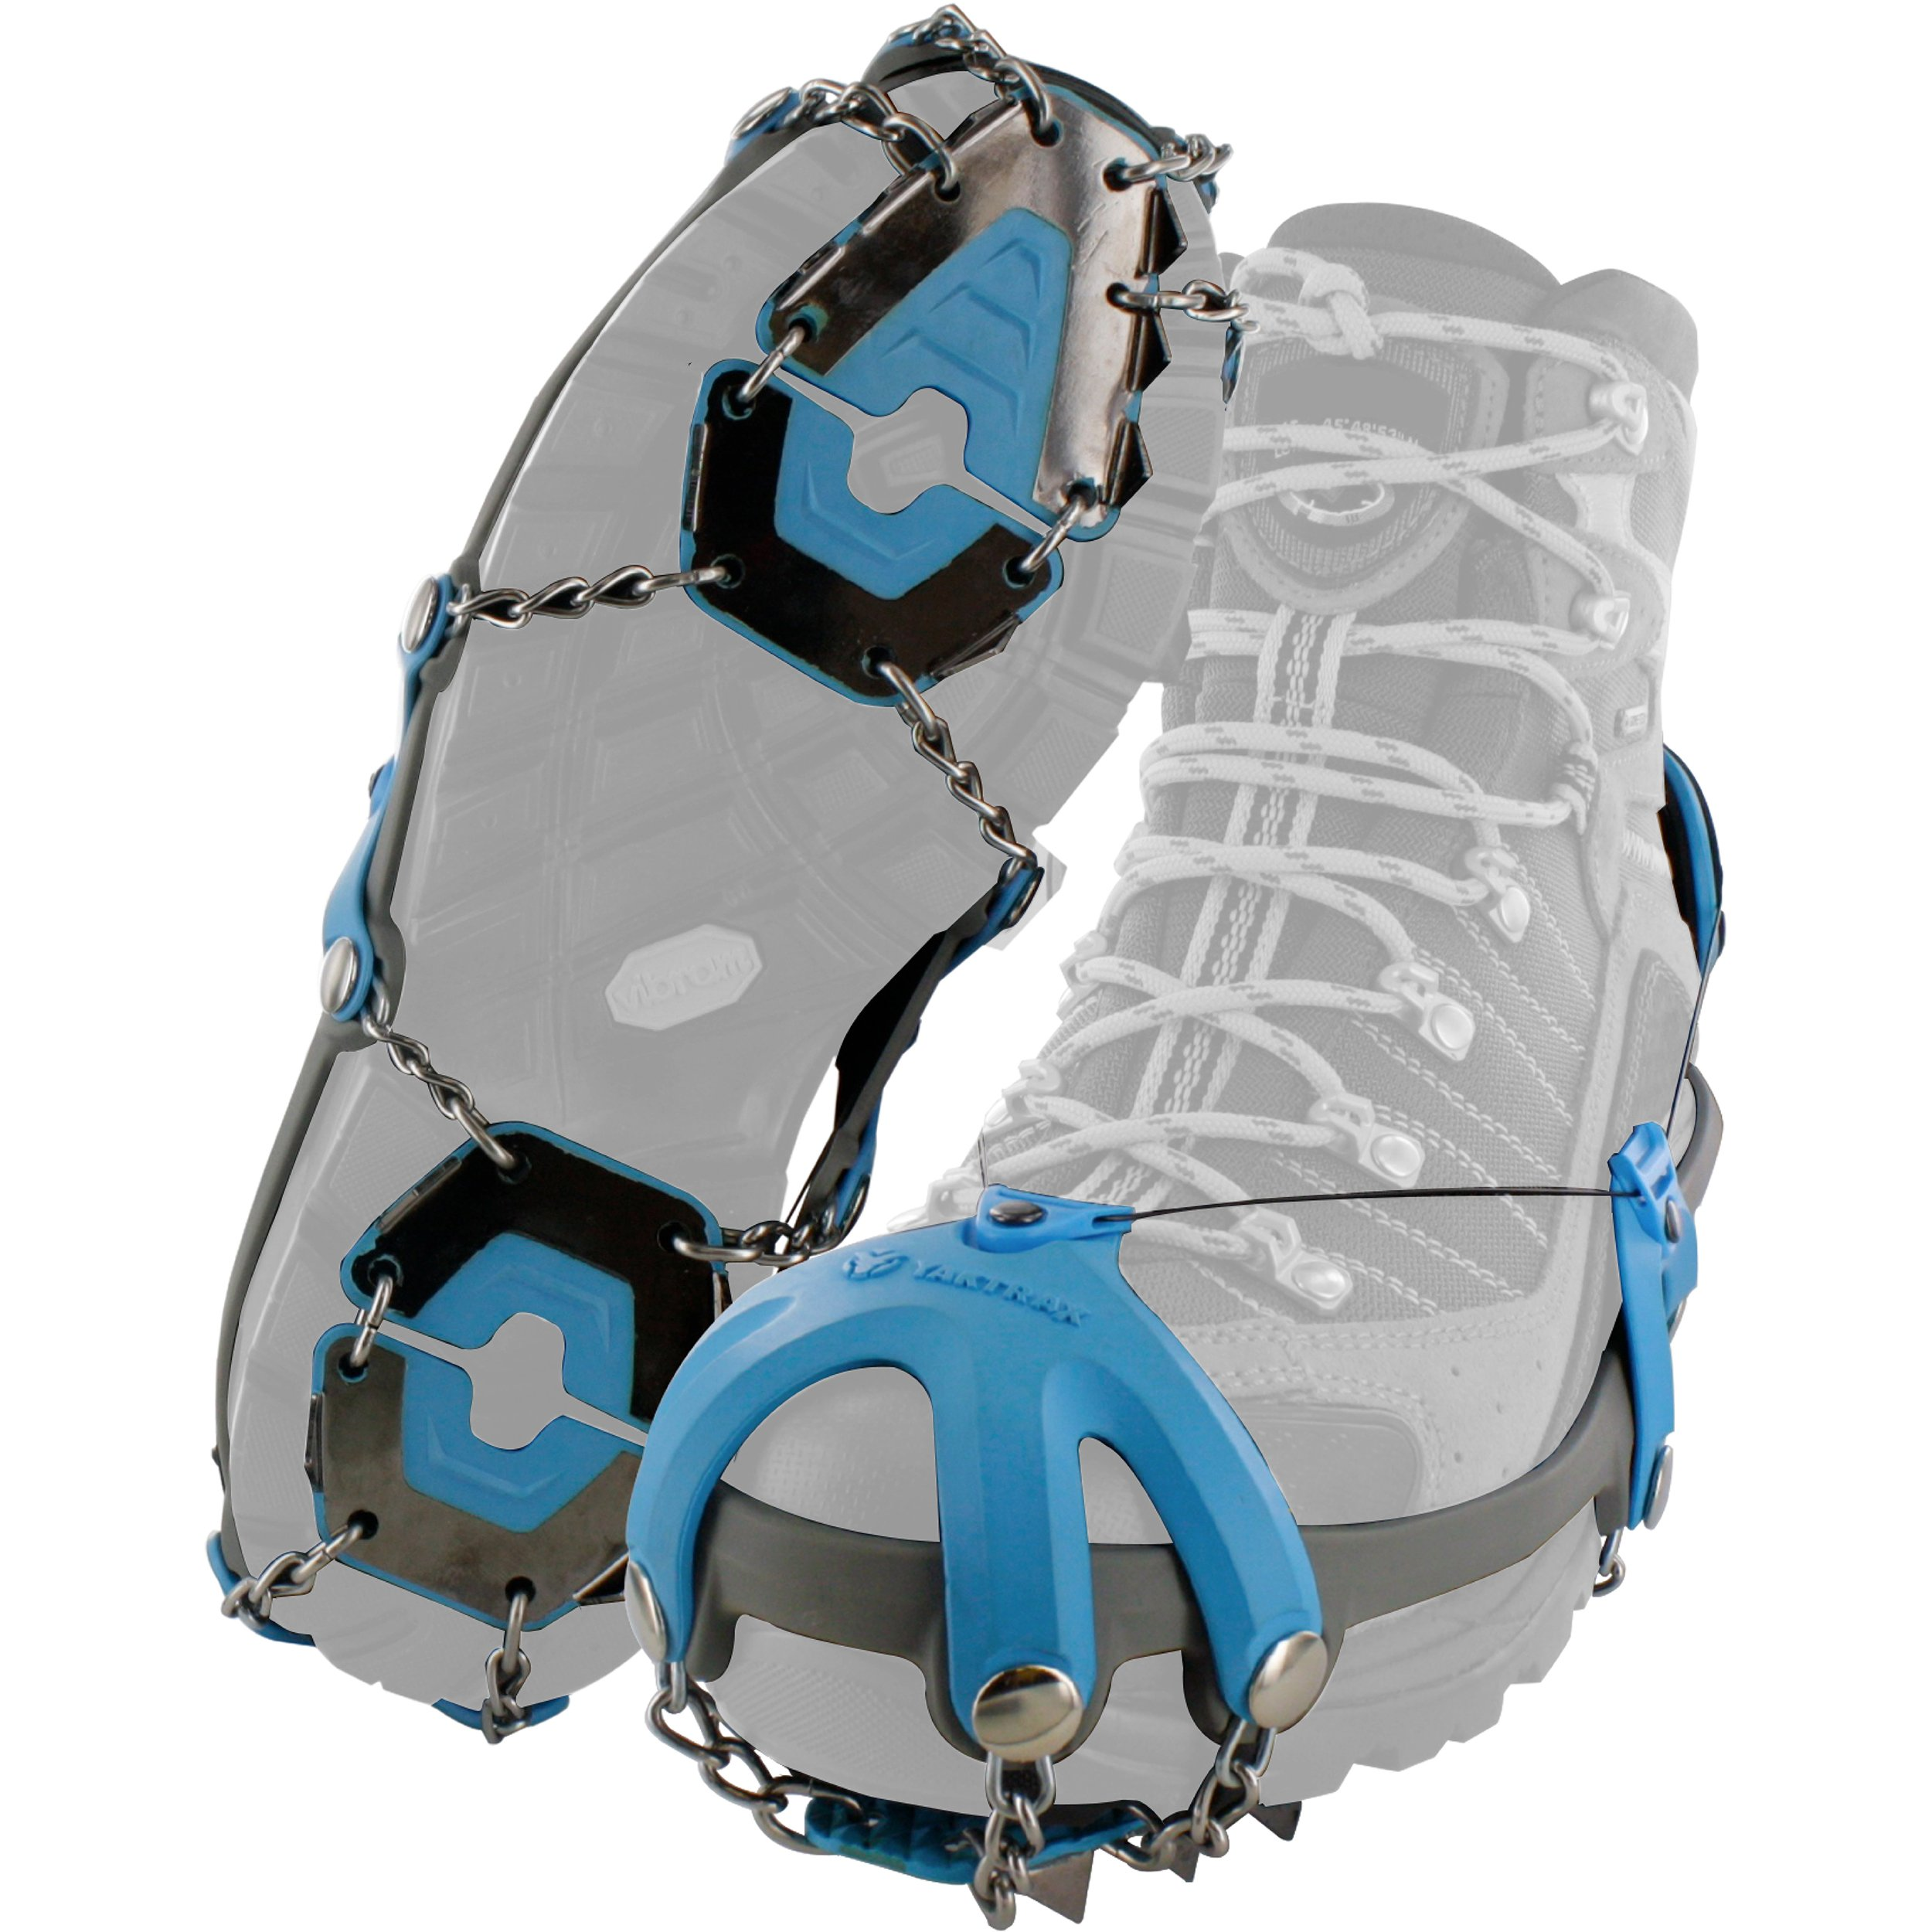 Yaktrax Summit Heavy Duty Traction Cleats with Carbon Steel Spikes for Snow and Ice (1 Pair), Medium